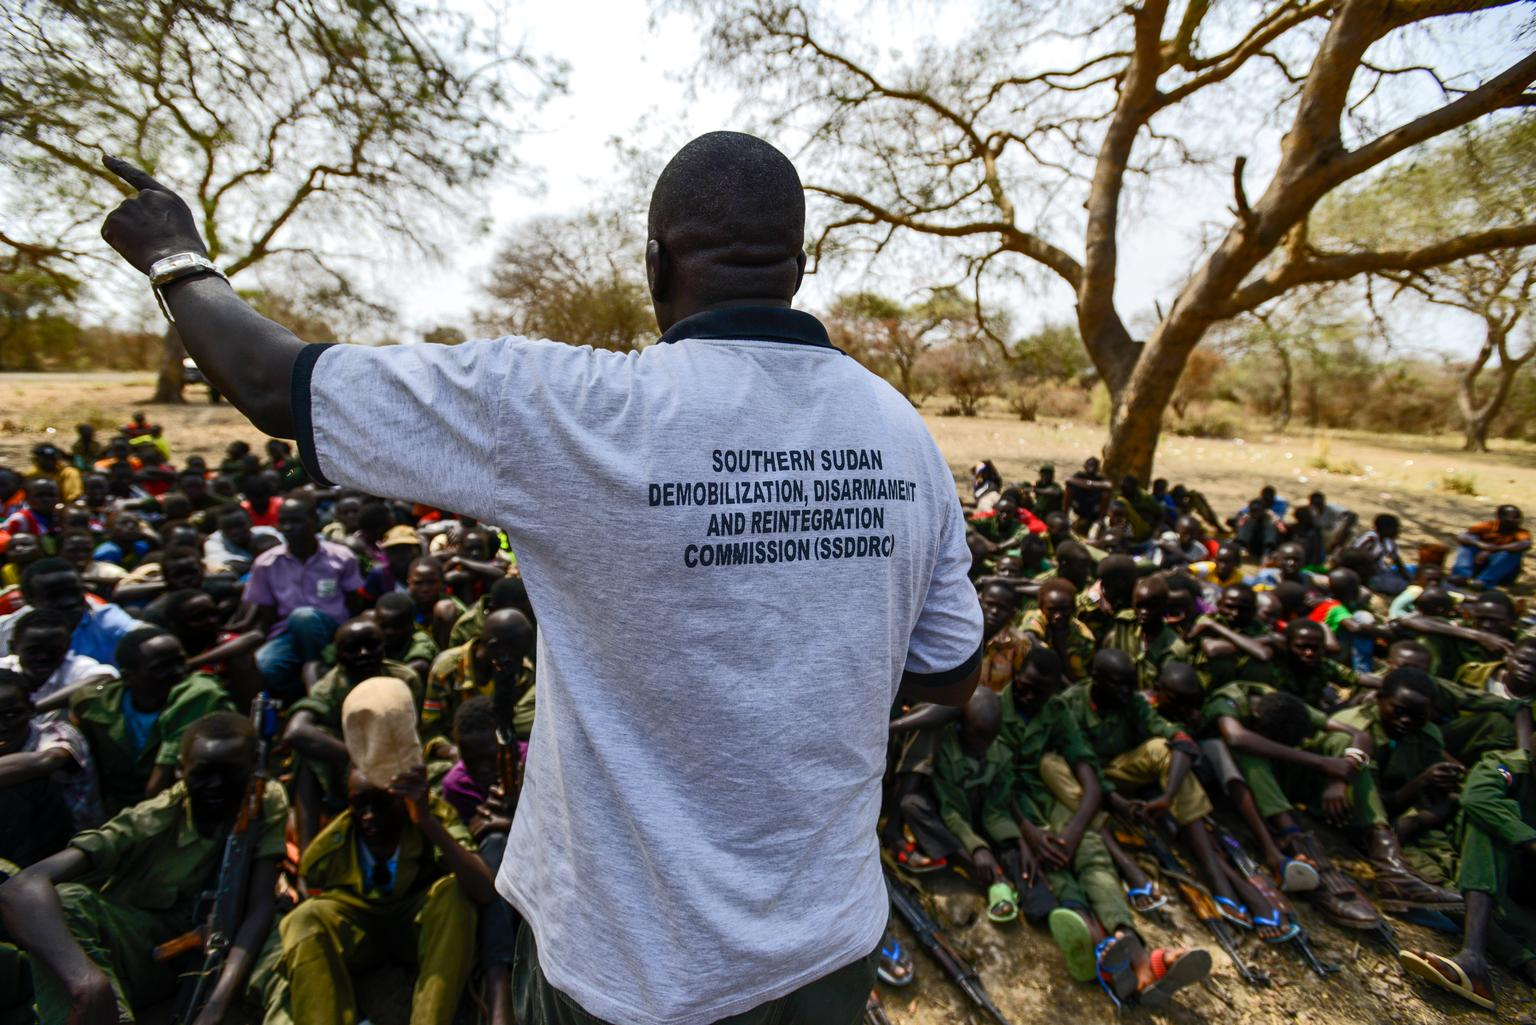 A worker from the South Sudan National Disarmament, Demobilization and Reintegration Commission addresses a group of children undergoing release from the SSDA Cobra Faction armed group, in Pibor, Jonglei State in January 2015.